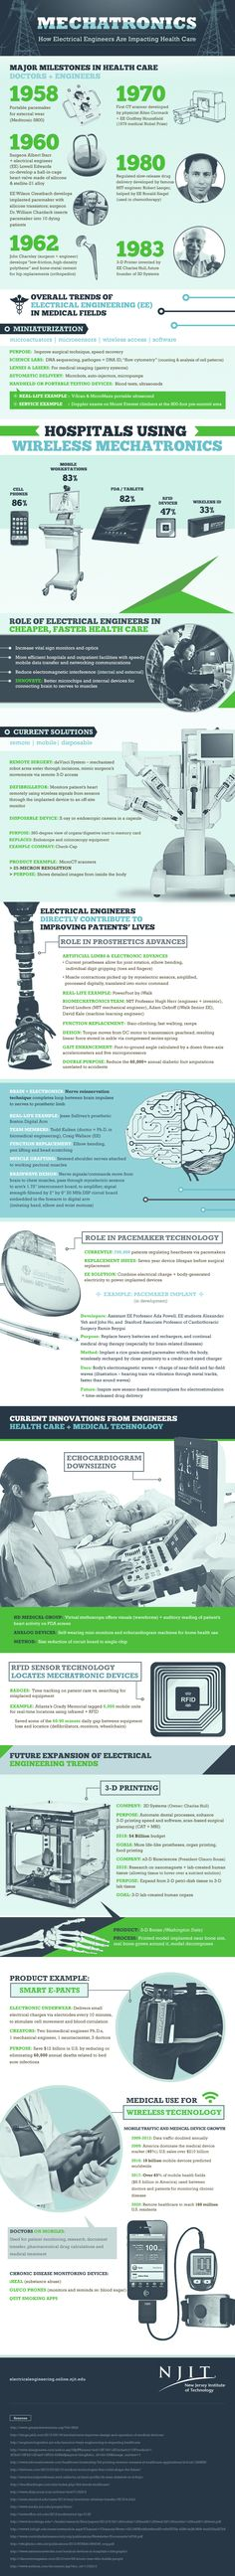 Mechatronics: How Electrical Engineers Are Impacting Health Care #Infographic #Health #History